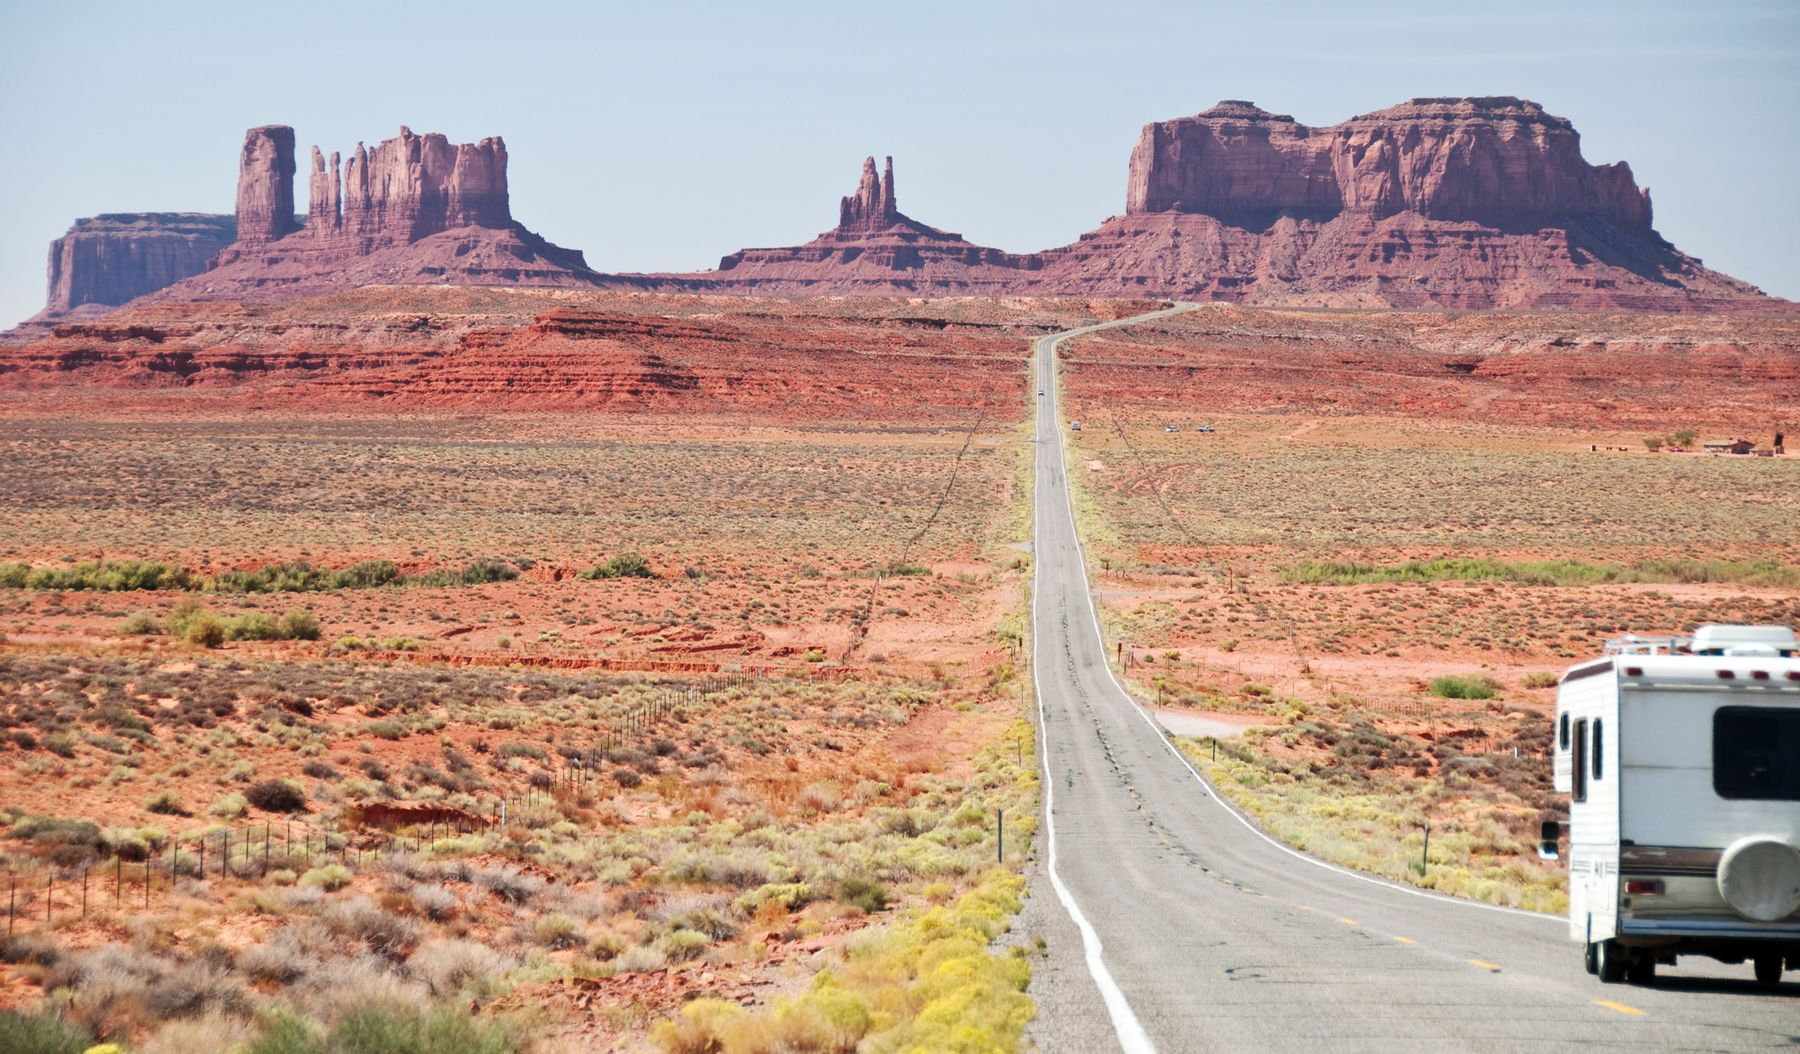 RV traveling down a road in Monument Valley